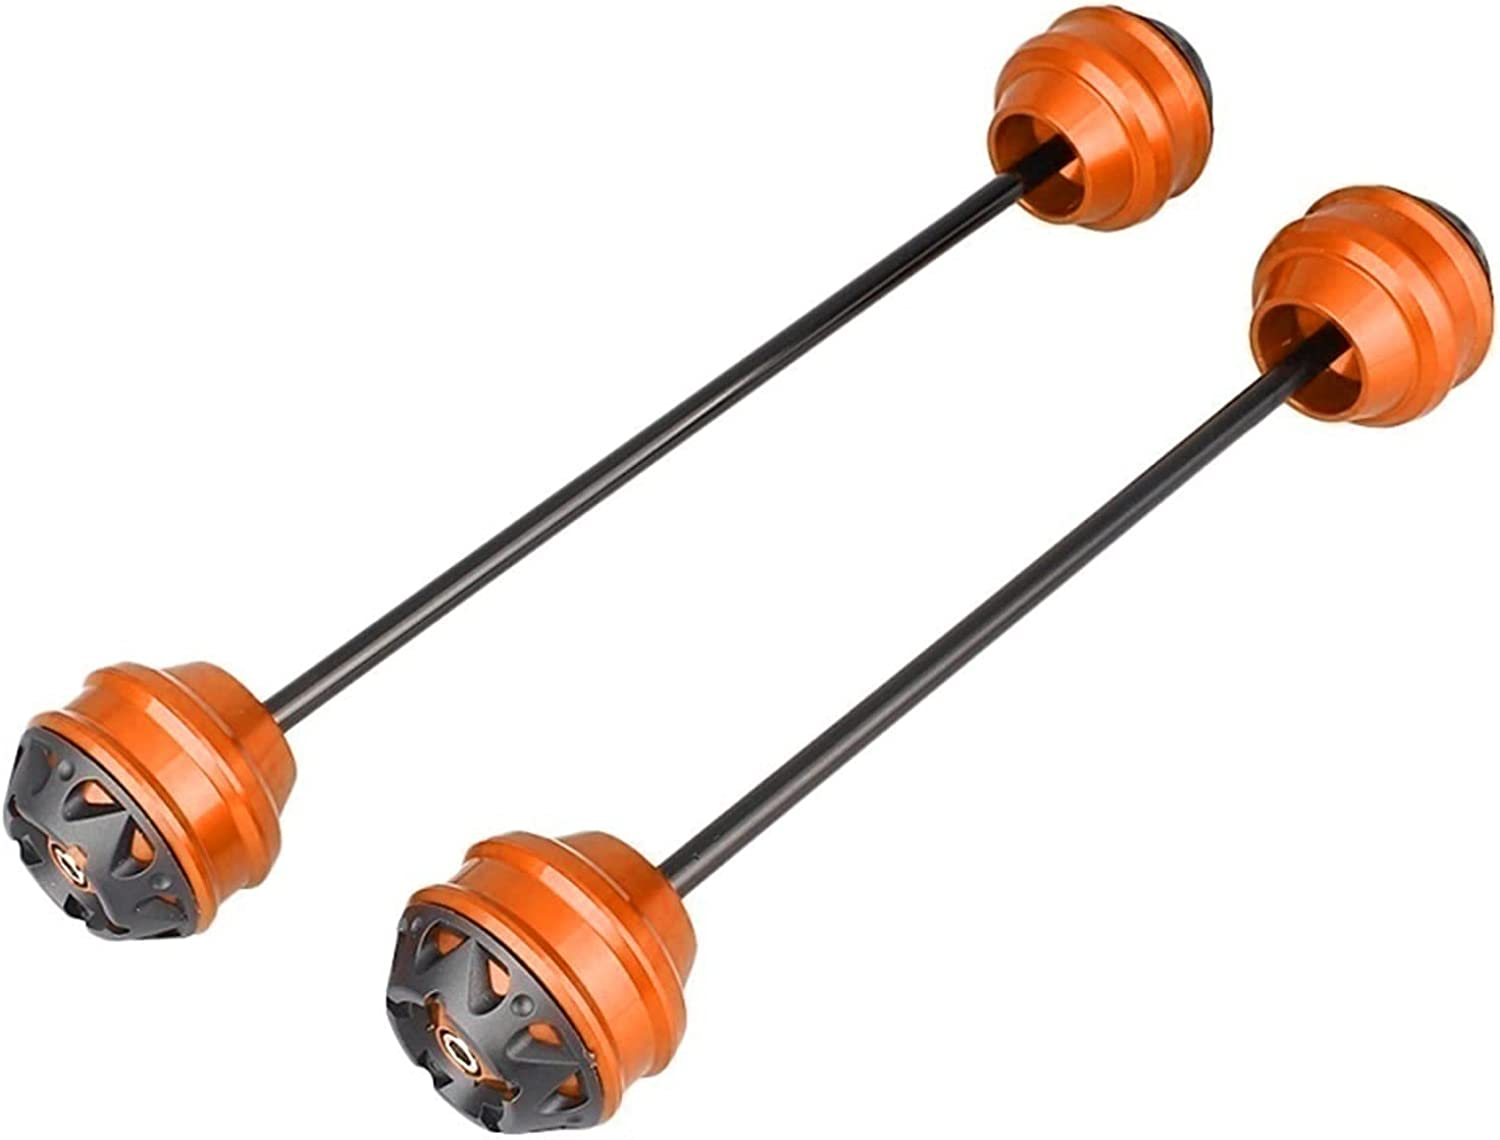 Max 61% OFF JHDS Motorcycle Falling It is very popular Protection Front Rear Sliders Axle Fork